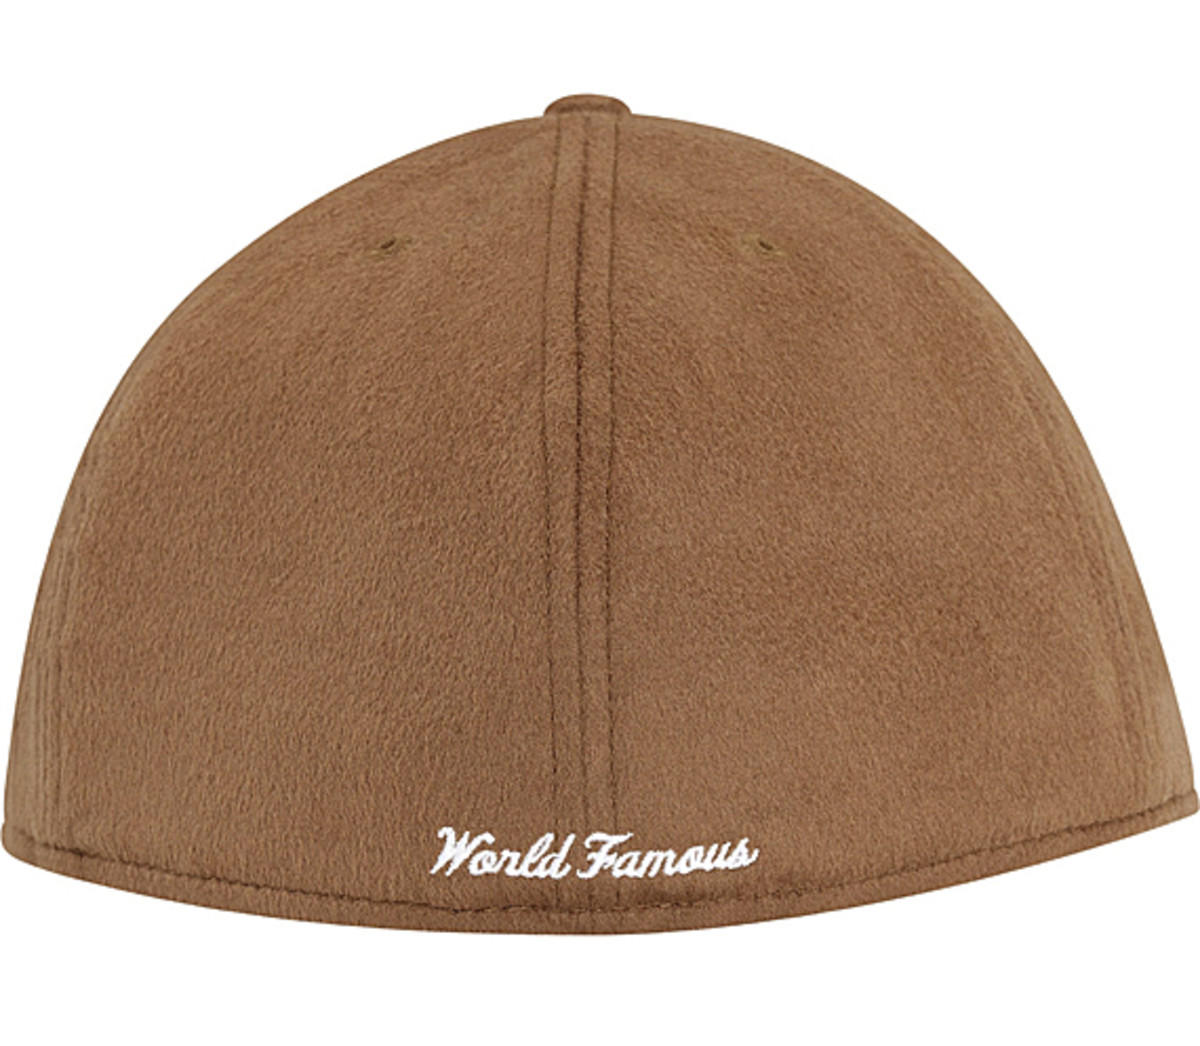 new-era-loro-piana-supreme-box-logo-cap-07